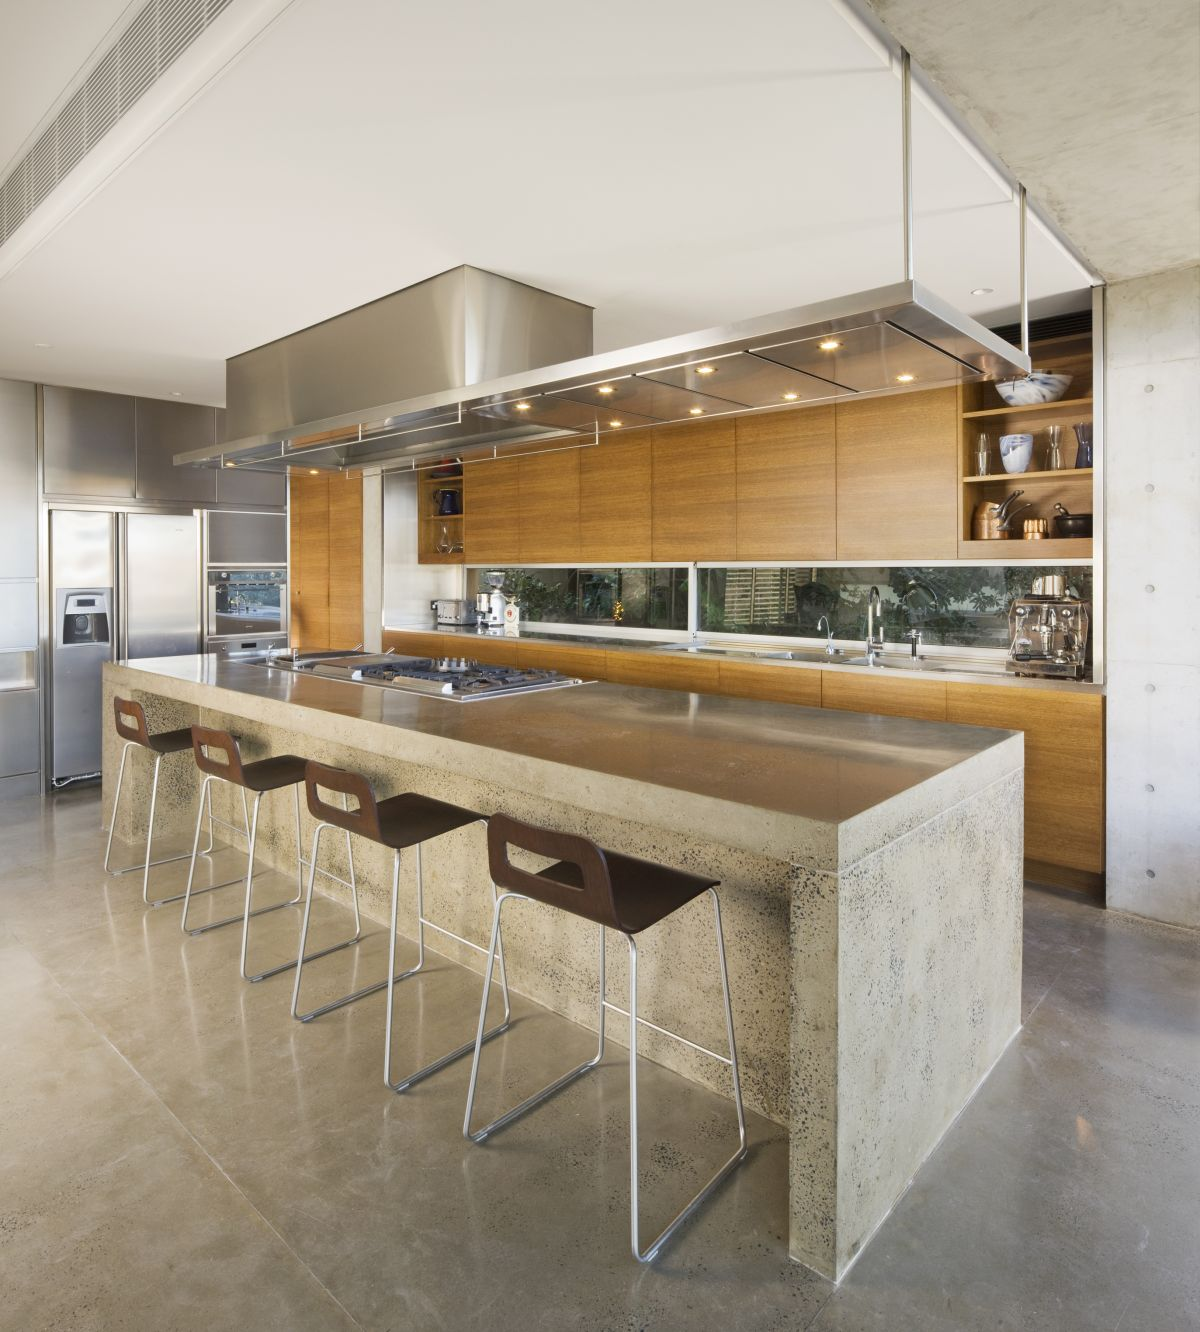 Modern Kitchen Pictures: Simply Inspiring 10 Wonderful Kitchen Design Lines That